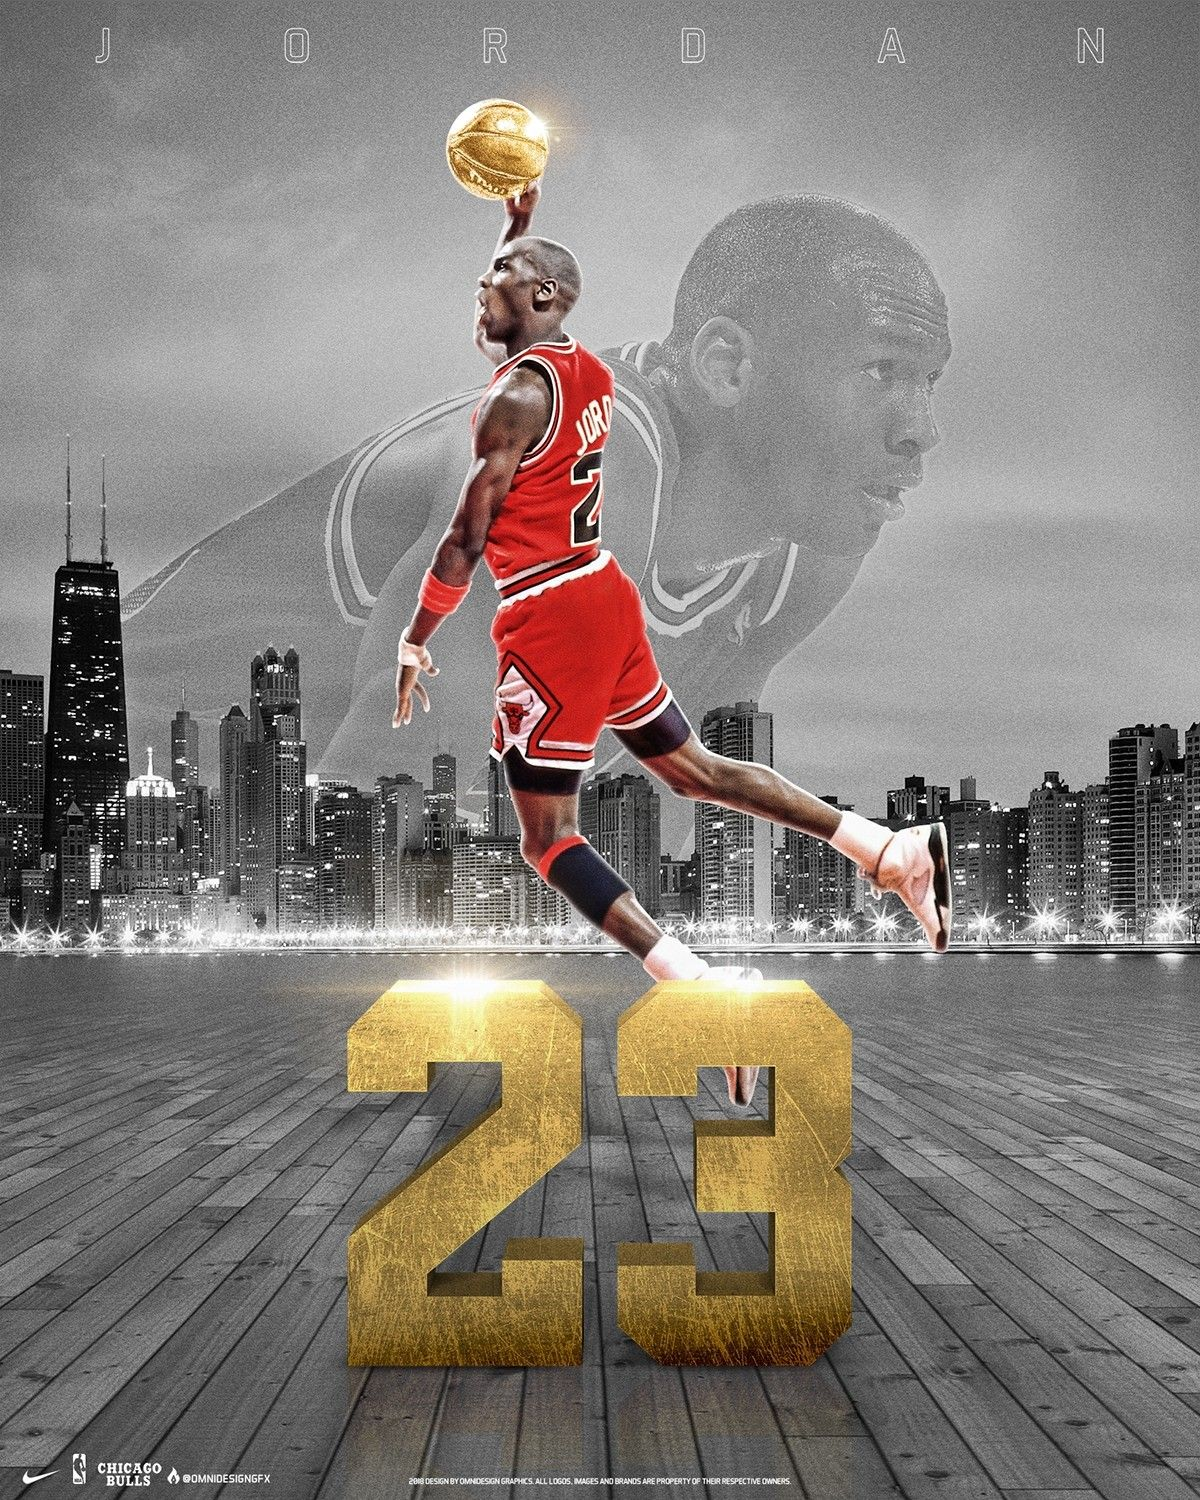 No Other Person Has Transcended Any Sport More Than This Man He S Clothing Label And Shoe Michael Jordan Pictures Michael Jordan Basketball Michael Jordan Art